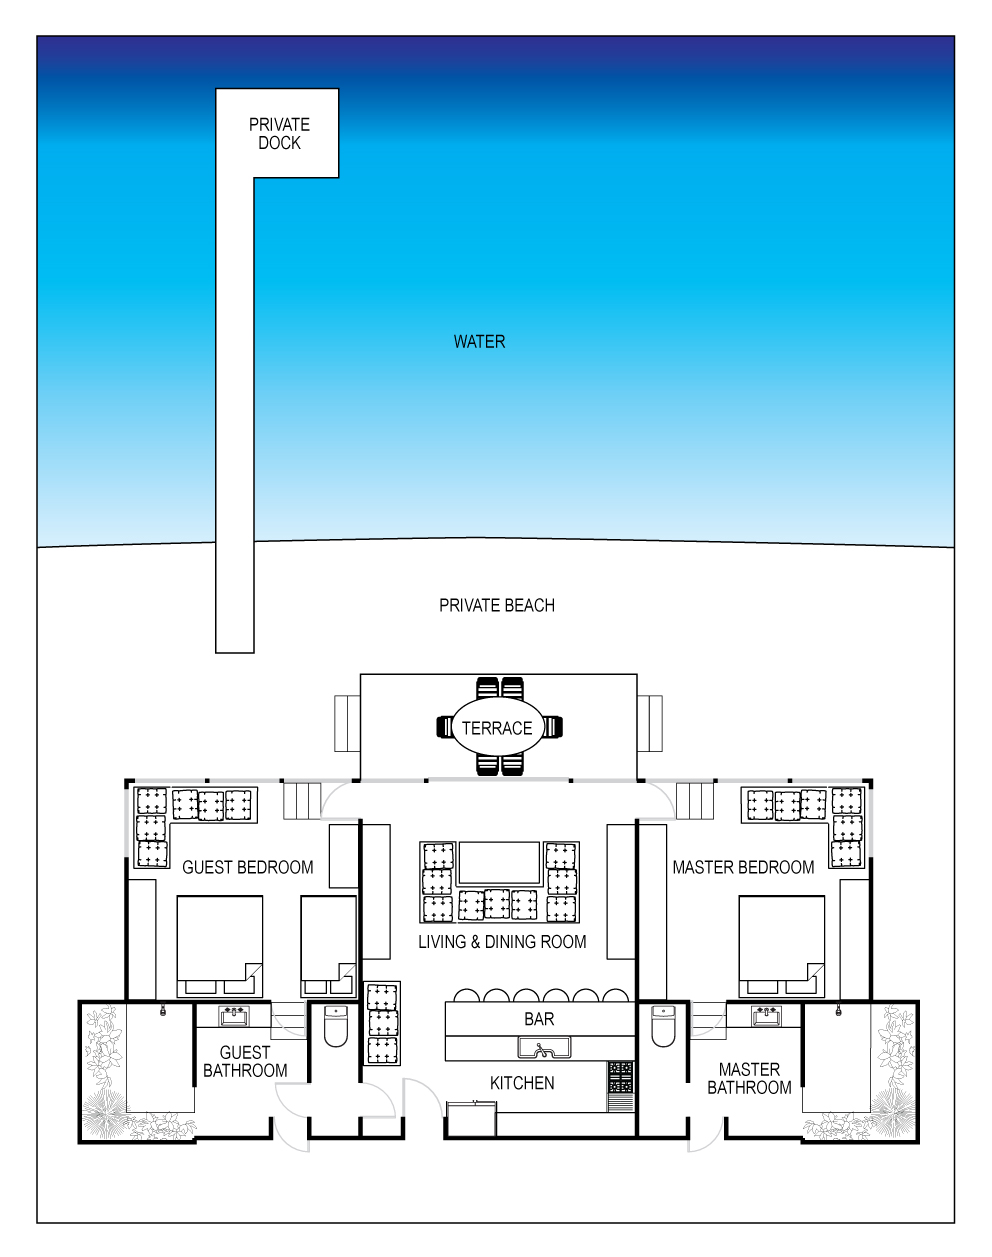 Twin Palms Resort Condo Floor Plans Panama City Beach 130 moreover 8 X 10 Bathroom Floor Plans furthermore balihaiboys as well Plans For Our Small Bathroom Renovation together with Fp 20 Nw Timberridgeelite N5V460T5. on master bathroom floor plans with shower only